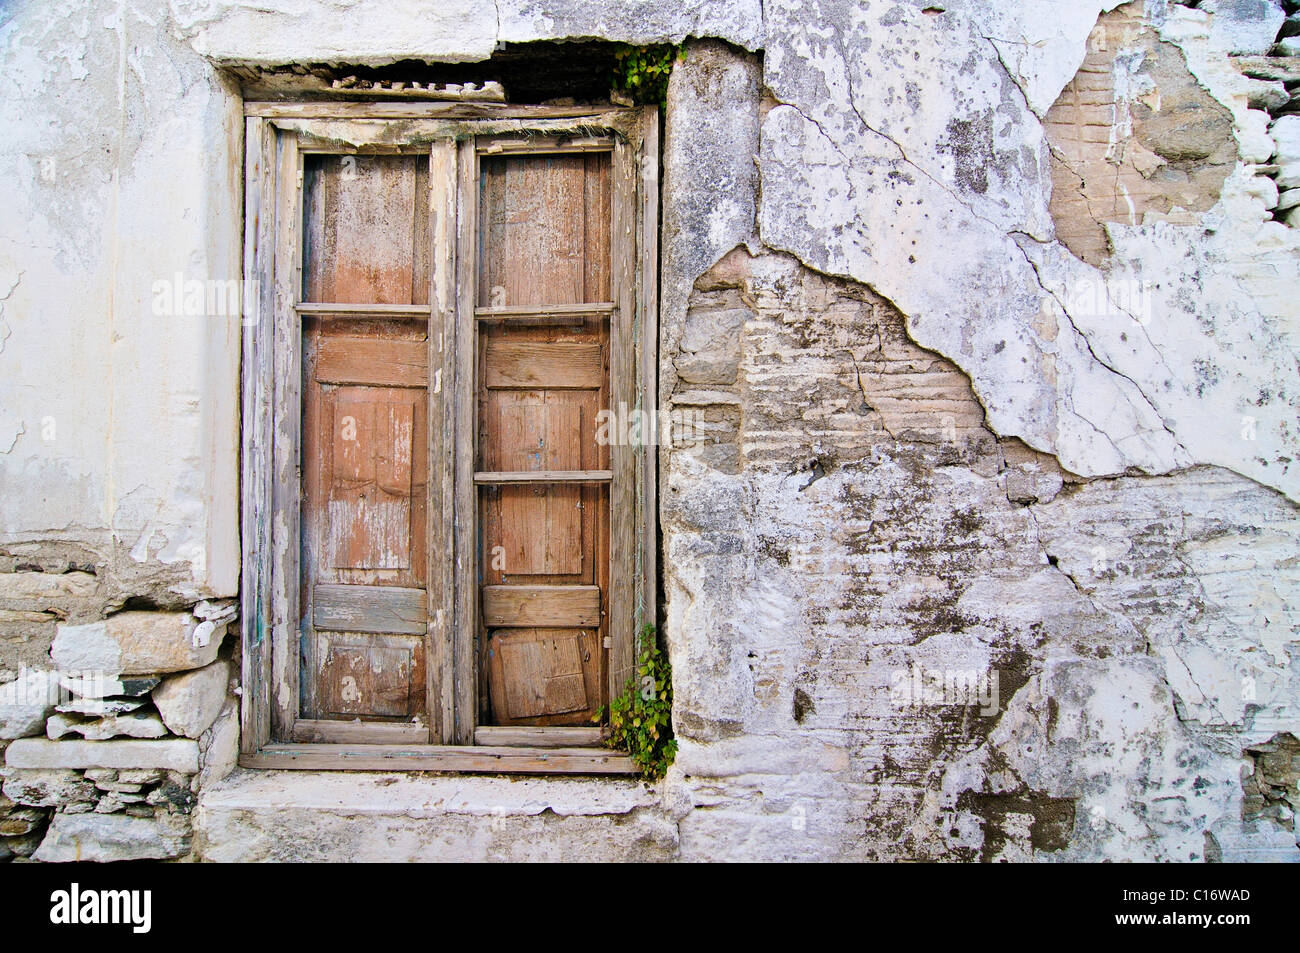 Old wooden window with weathered masonry in Naxos, Cyclades, Greece, Europe - Stock Image